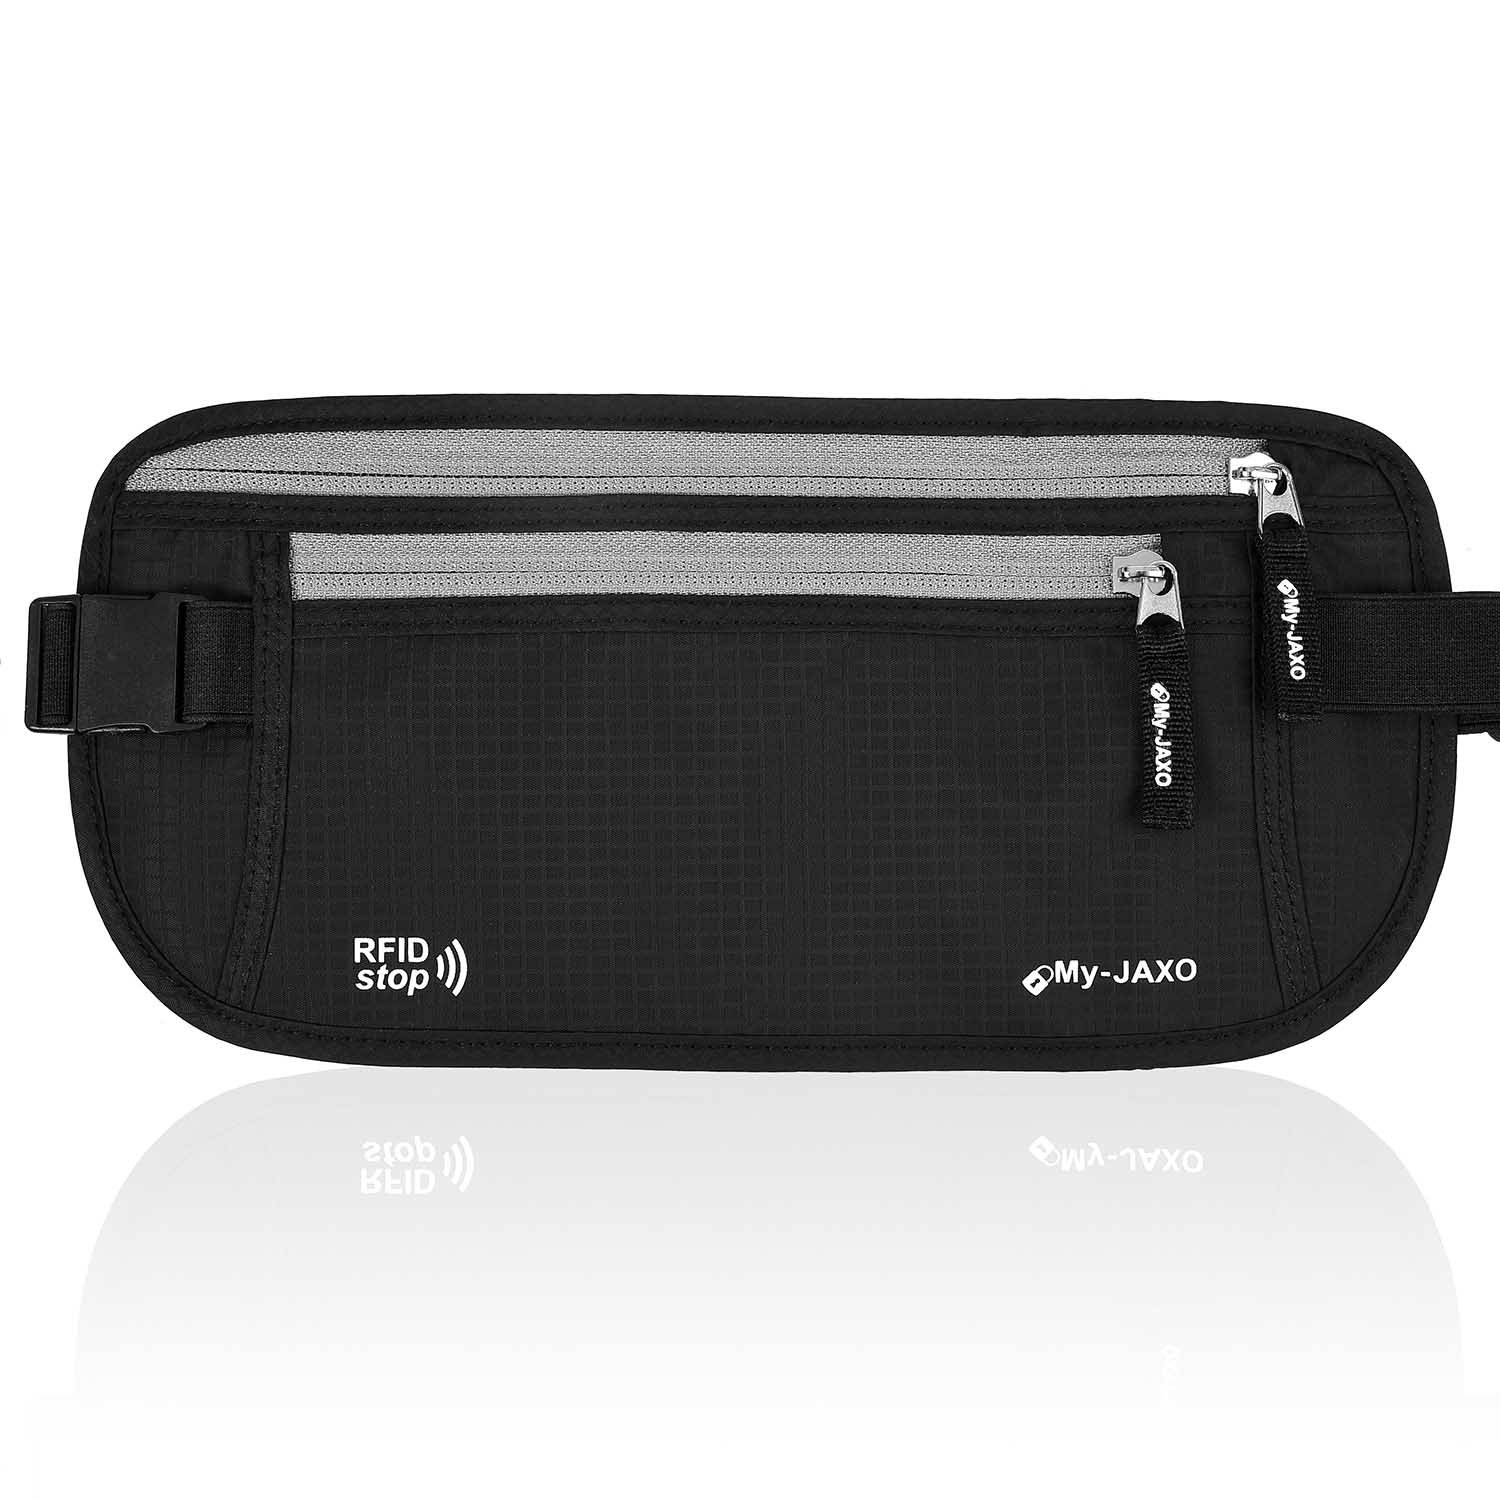 My-JAXO Premium Waist Belt Travel Safe Money Belt & Passport Holder with RFID Blocking Technology Prevents Electronic Pickpocketing and Theft Black or Grey